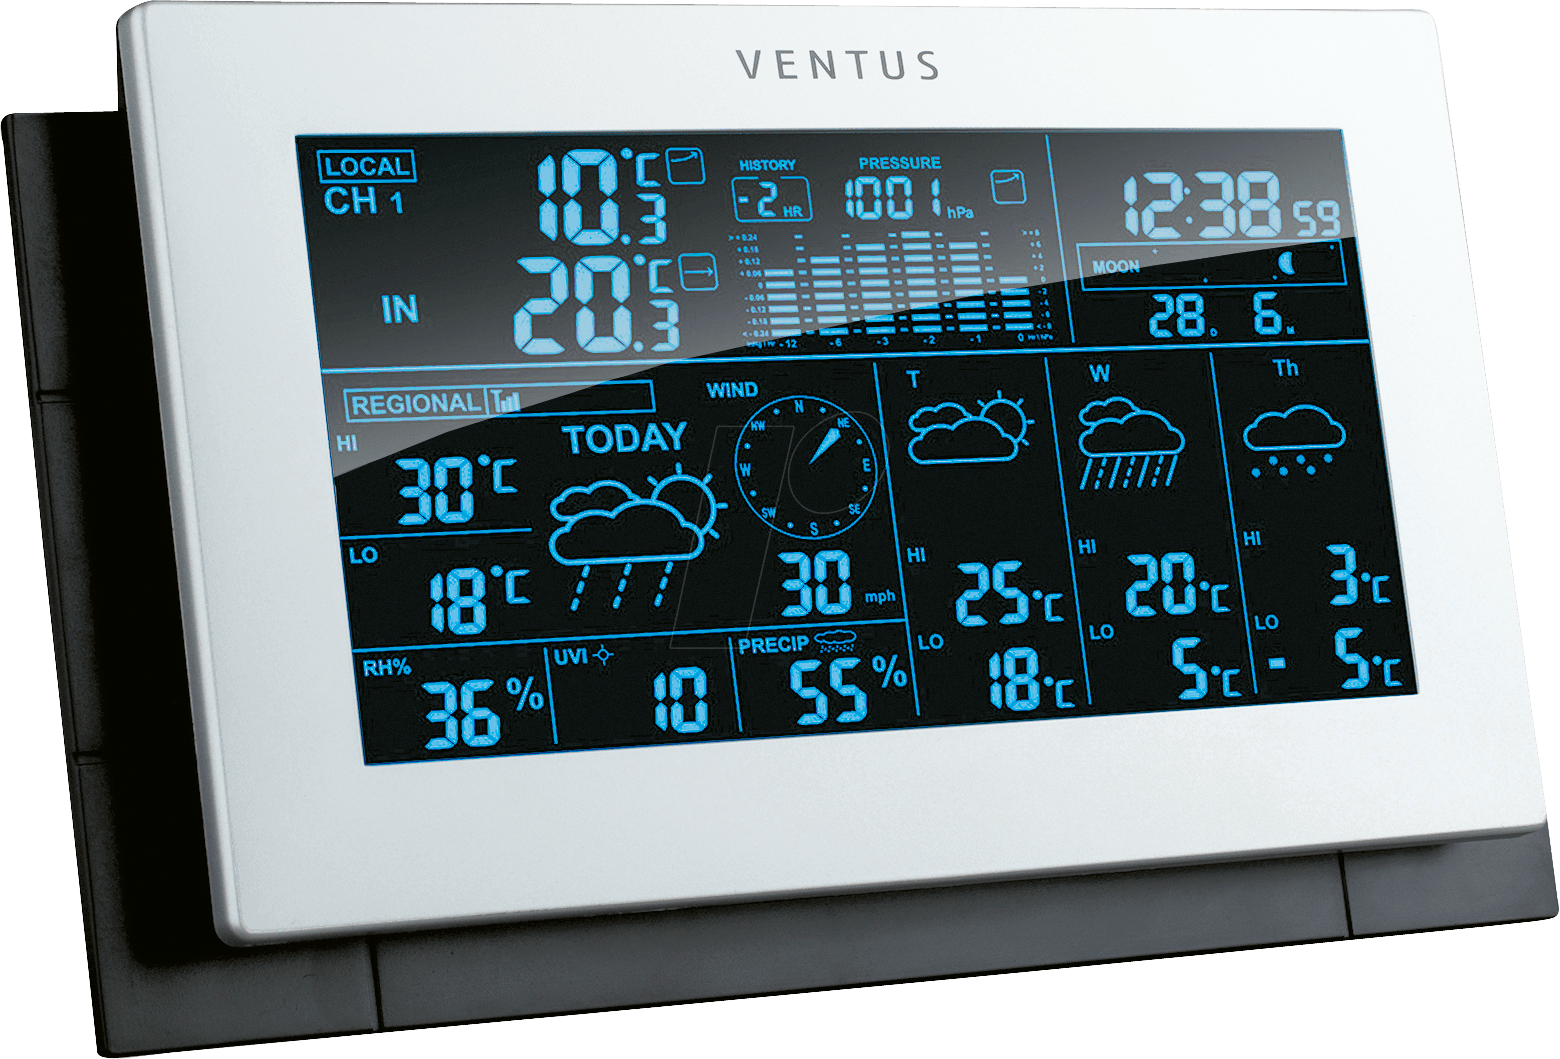 ventus w194 funk wetterstation bei reichelt elektronik. Black Bedroom Furniture Sets. Home Design Ideas